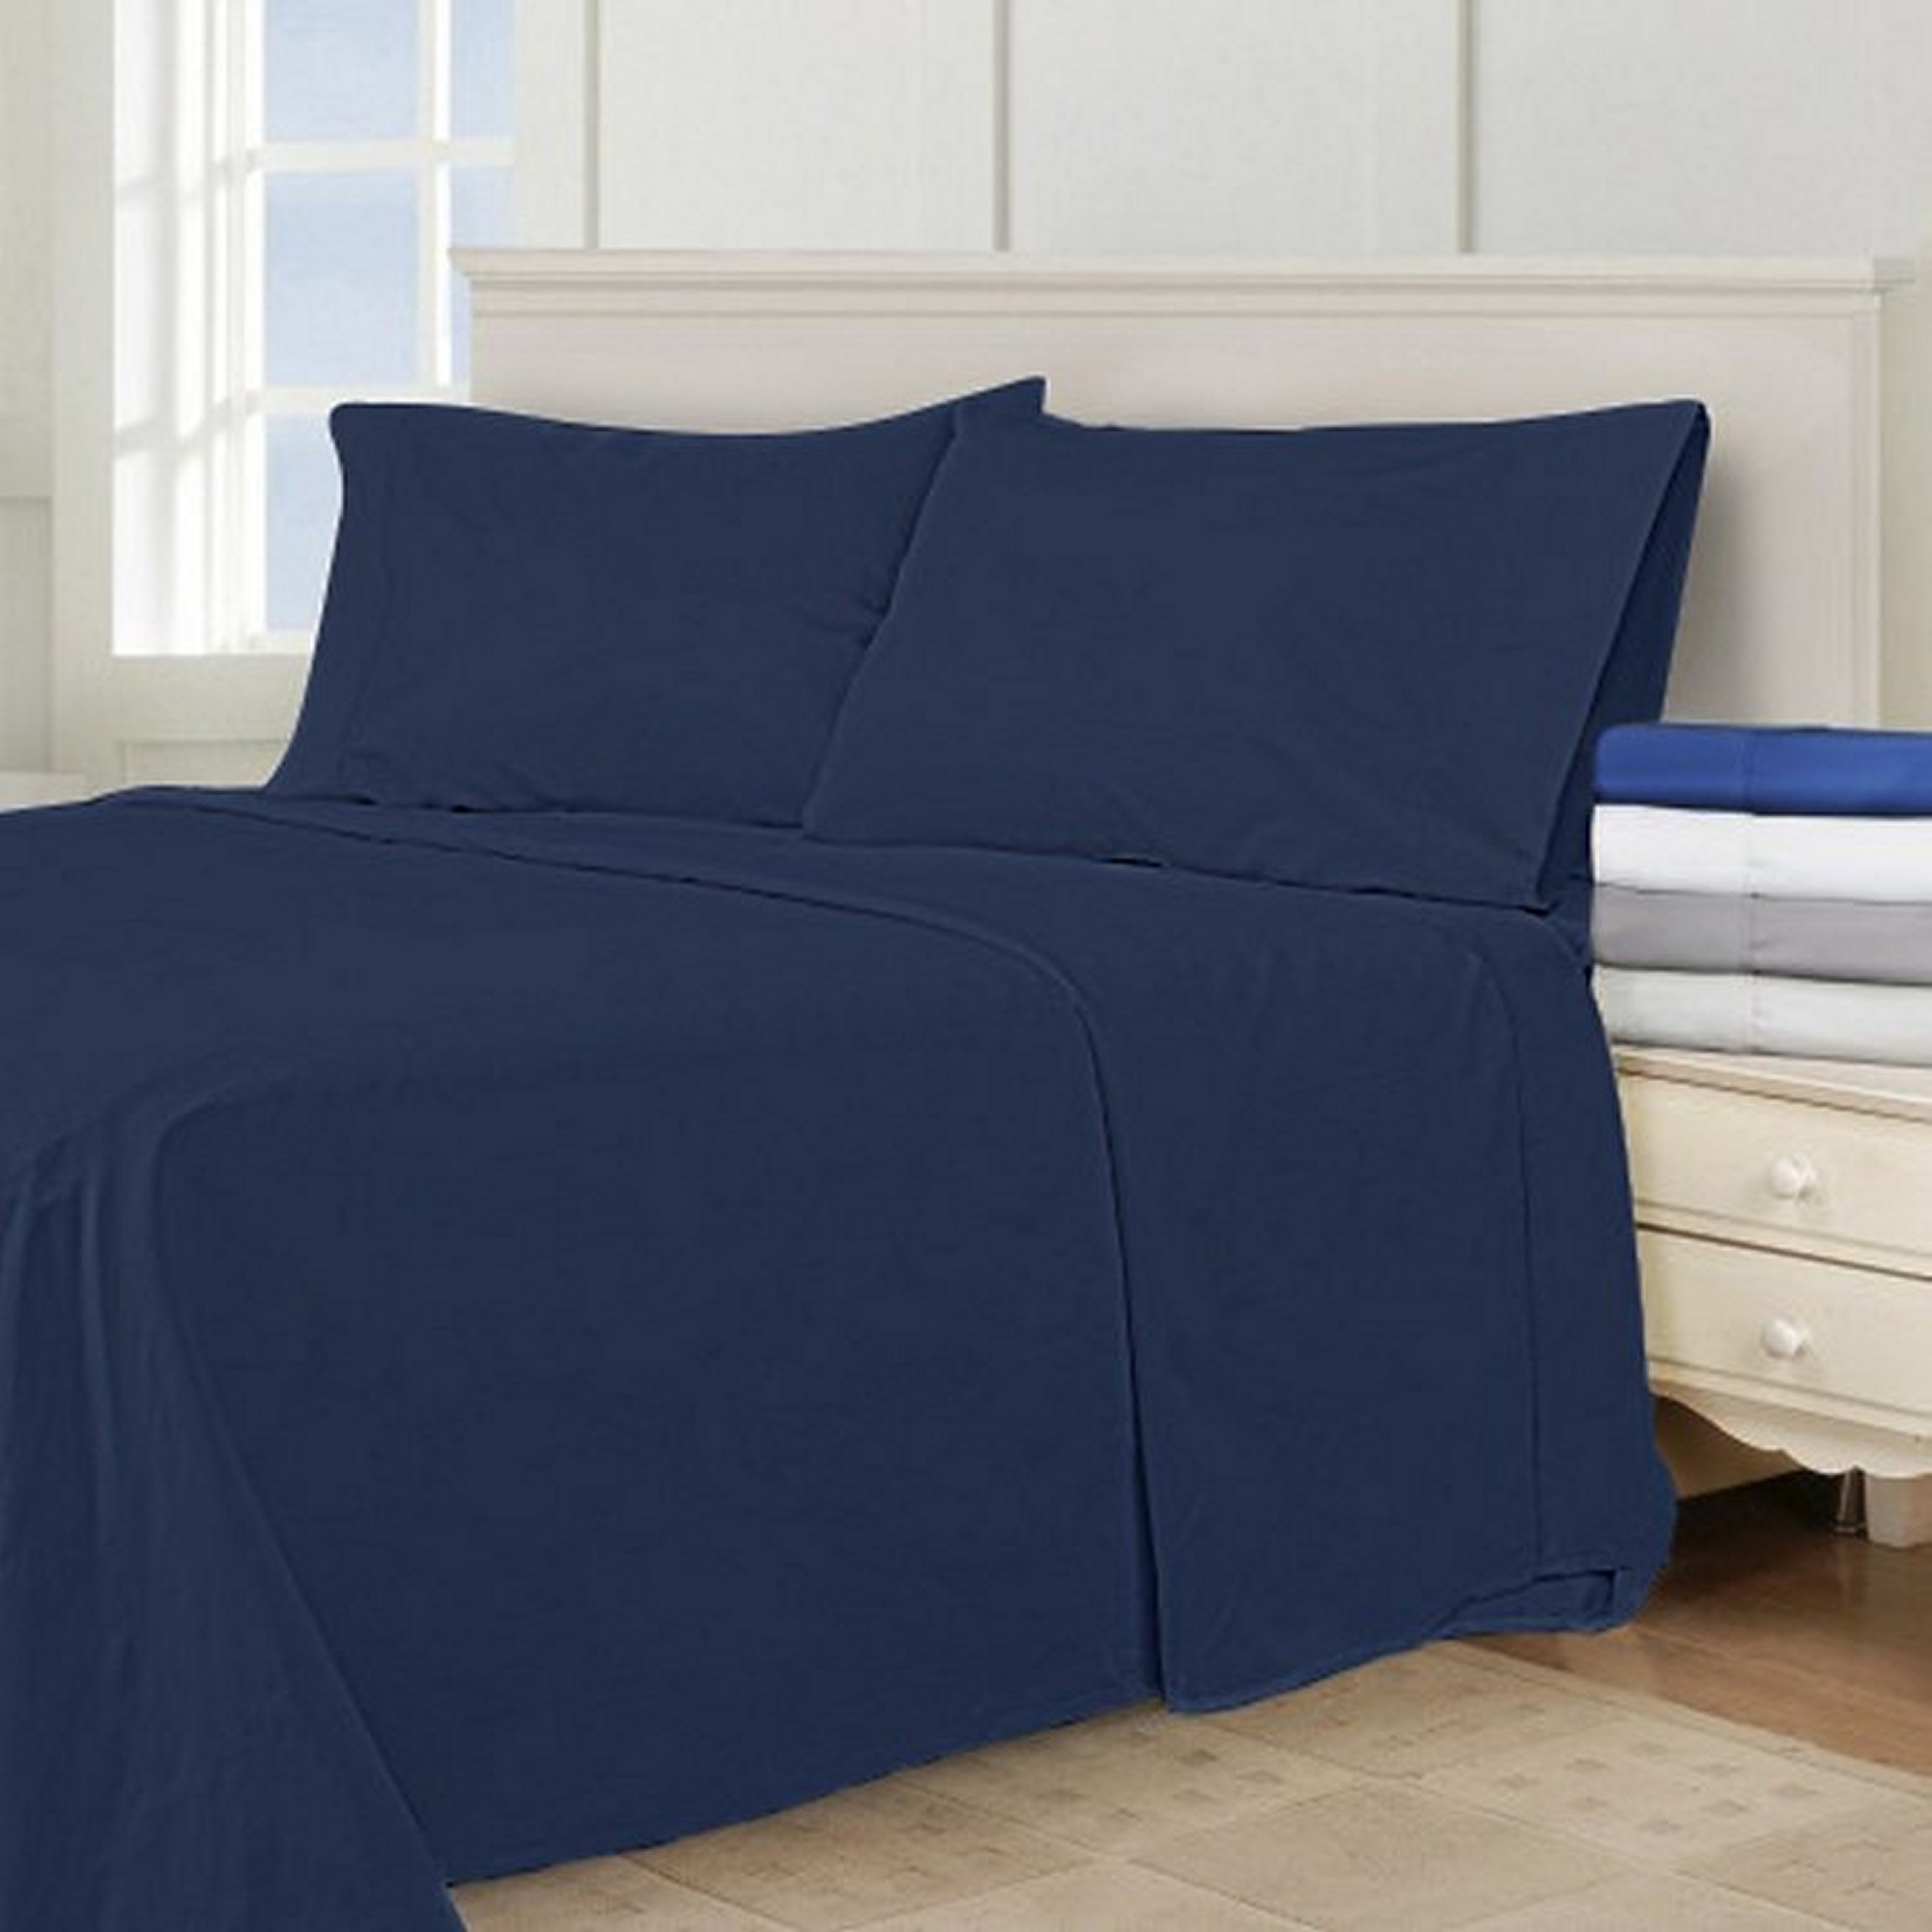 "Super King California King Oversized 3 Piece Duvet Cover Set (120"" x 98"")"